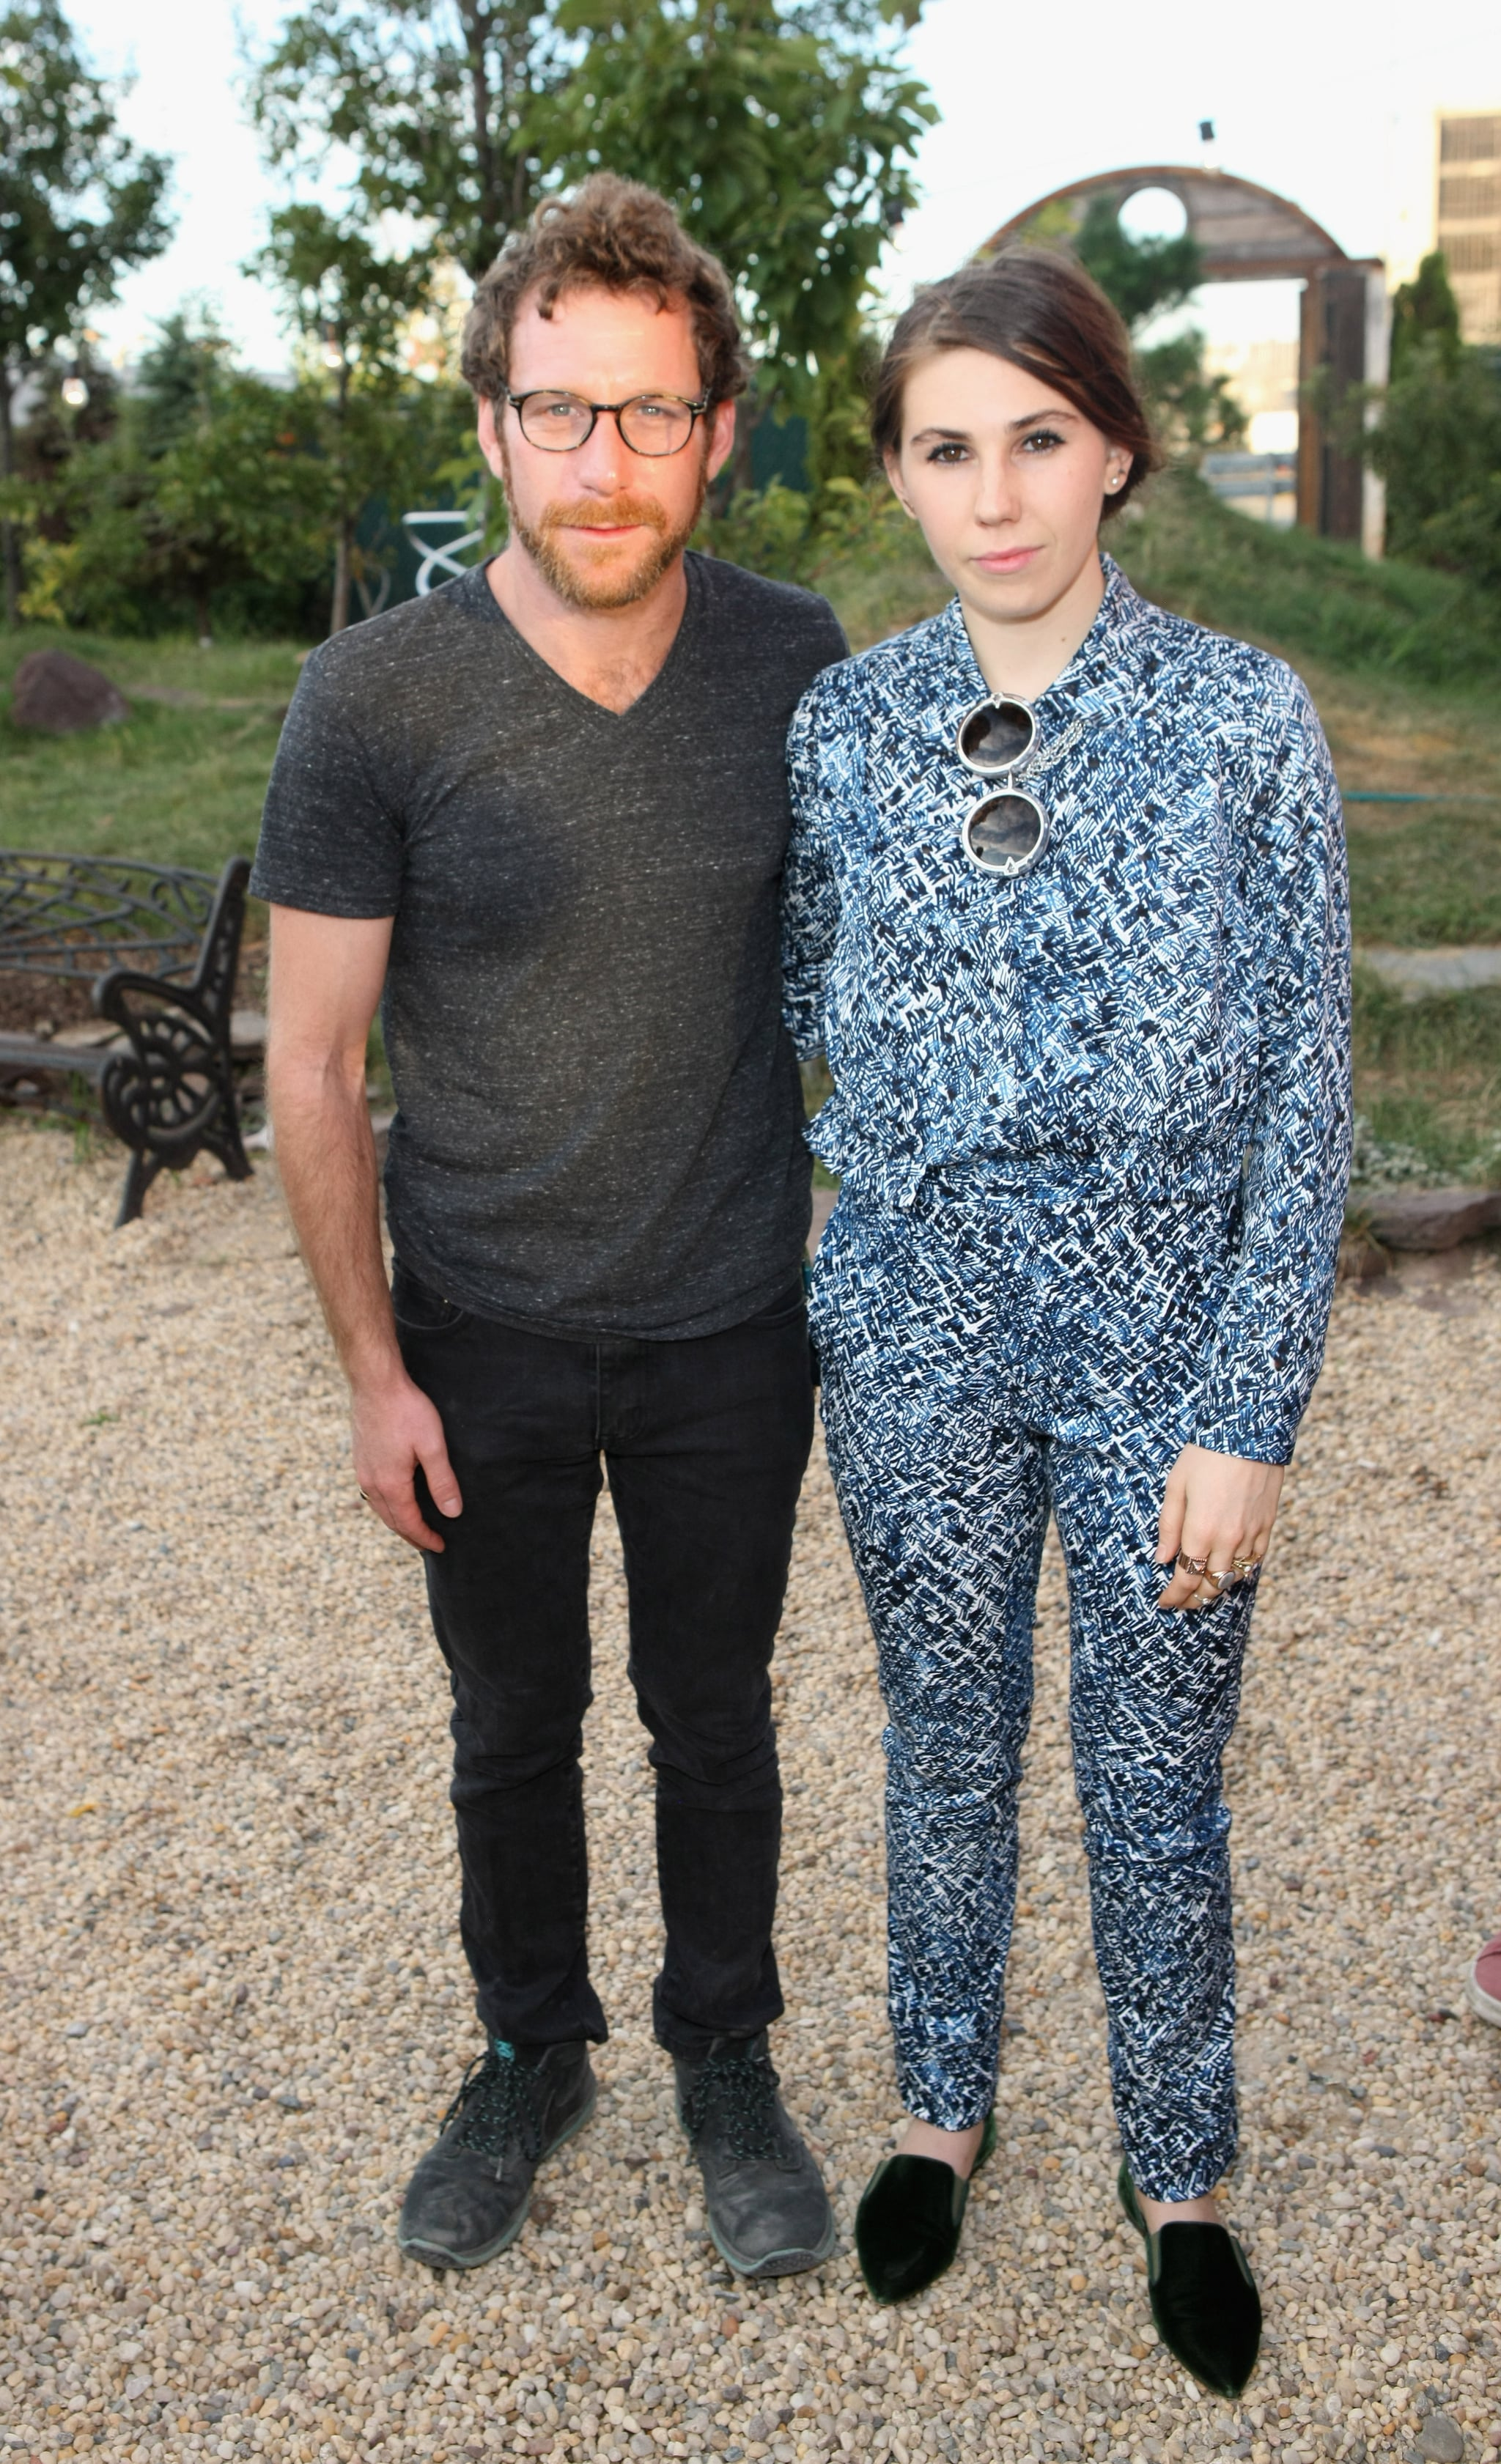 Dustin Yellin and Zosia Mamet posed together at Rachel Comey's Brooklyn dinner and presentation on Wednesday.